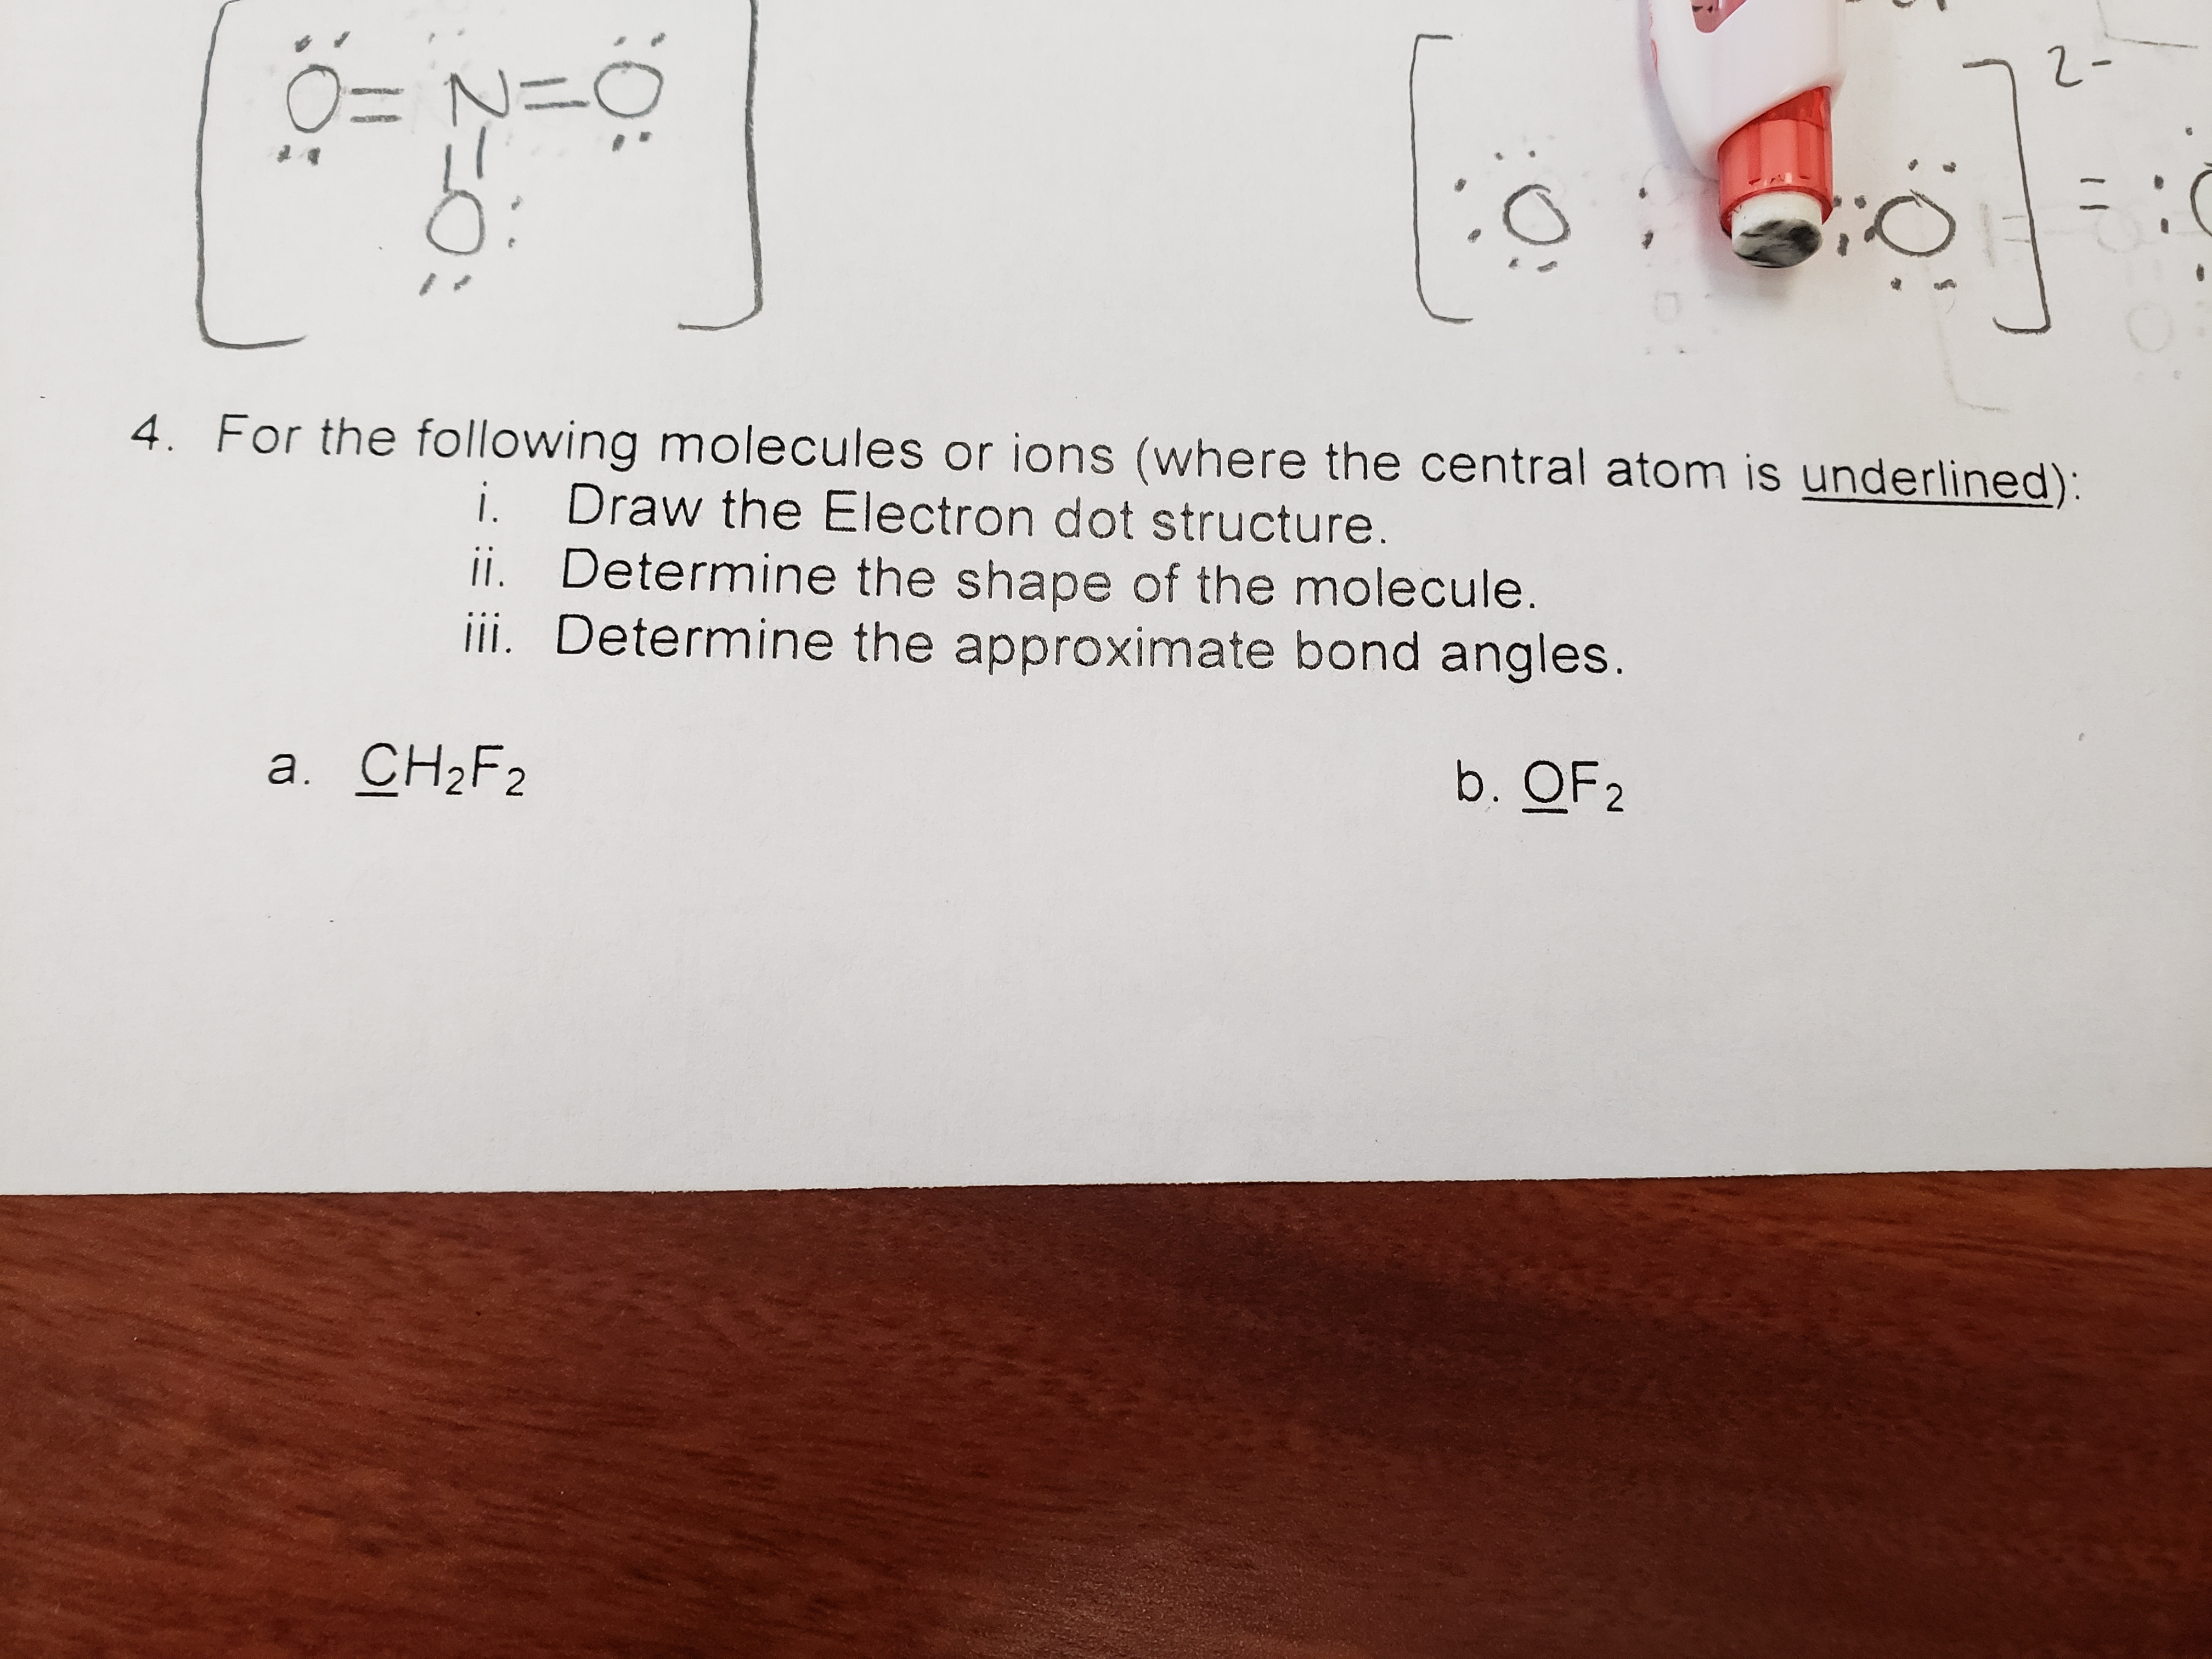 4. For the following molecules or ions (where the central atom is underlined): i. Draw the Electron dot structure ii. Determine the shape of the molecule ii. Determine the approximate bond angles. b. OF2 a. CH2F2